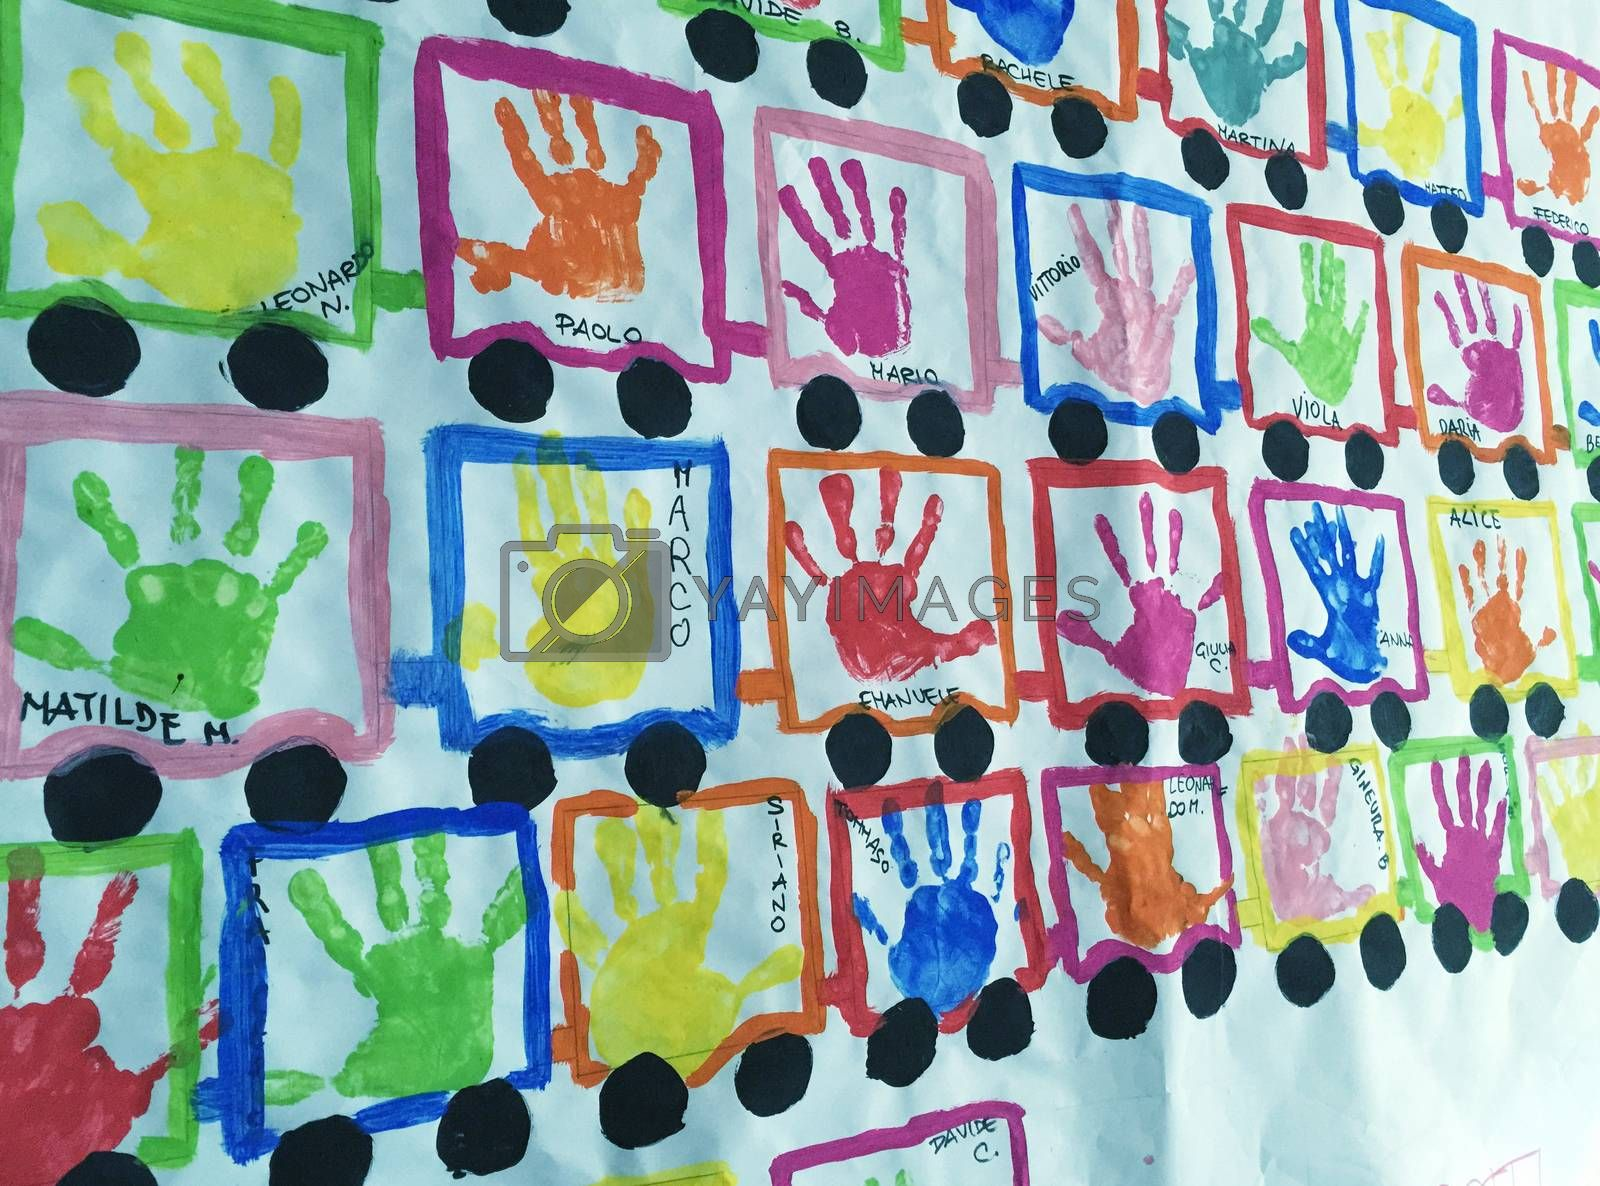 Baby names and handprints on a school wall.